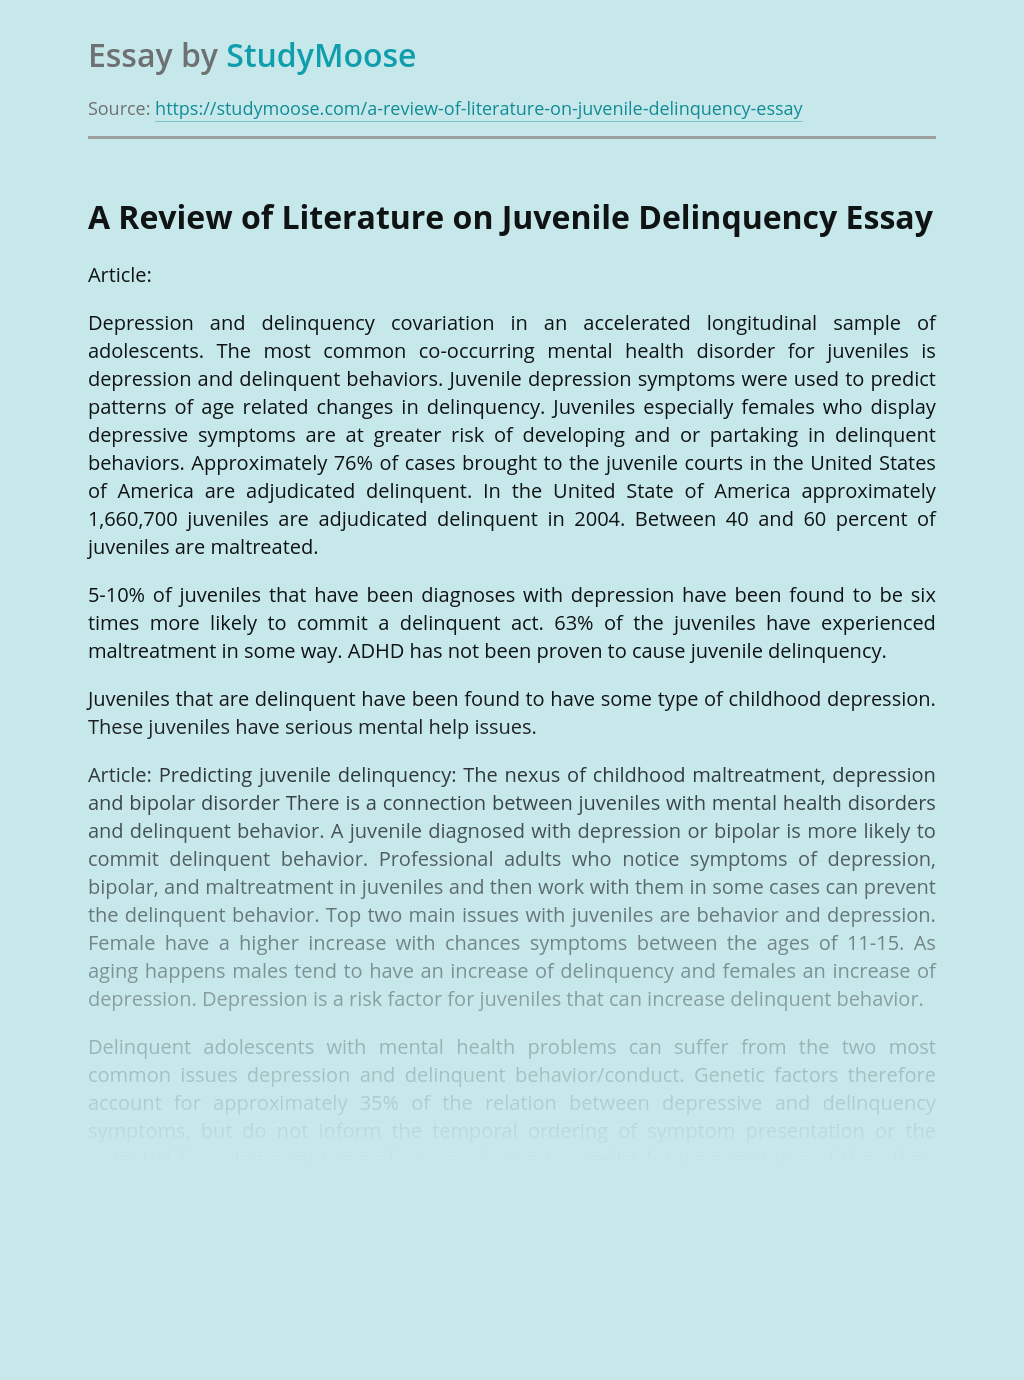 A Review of Literature on Juvenile Delinquency